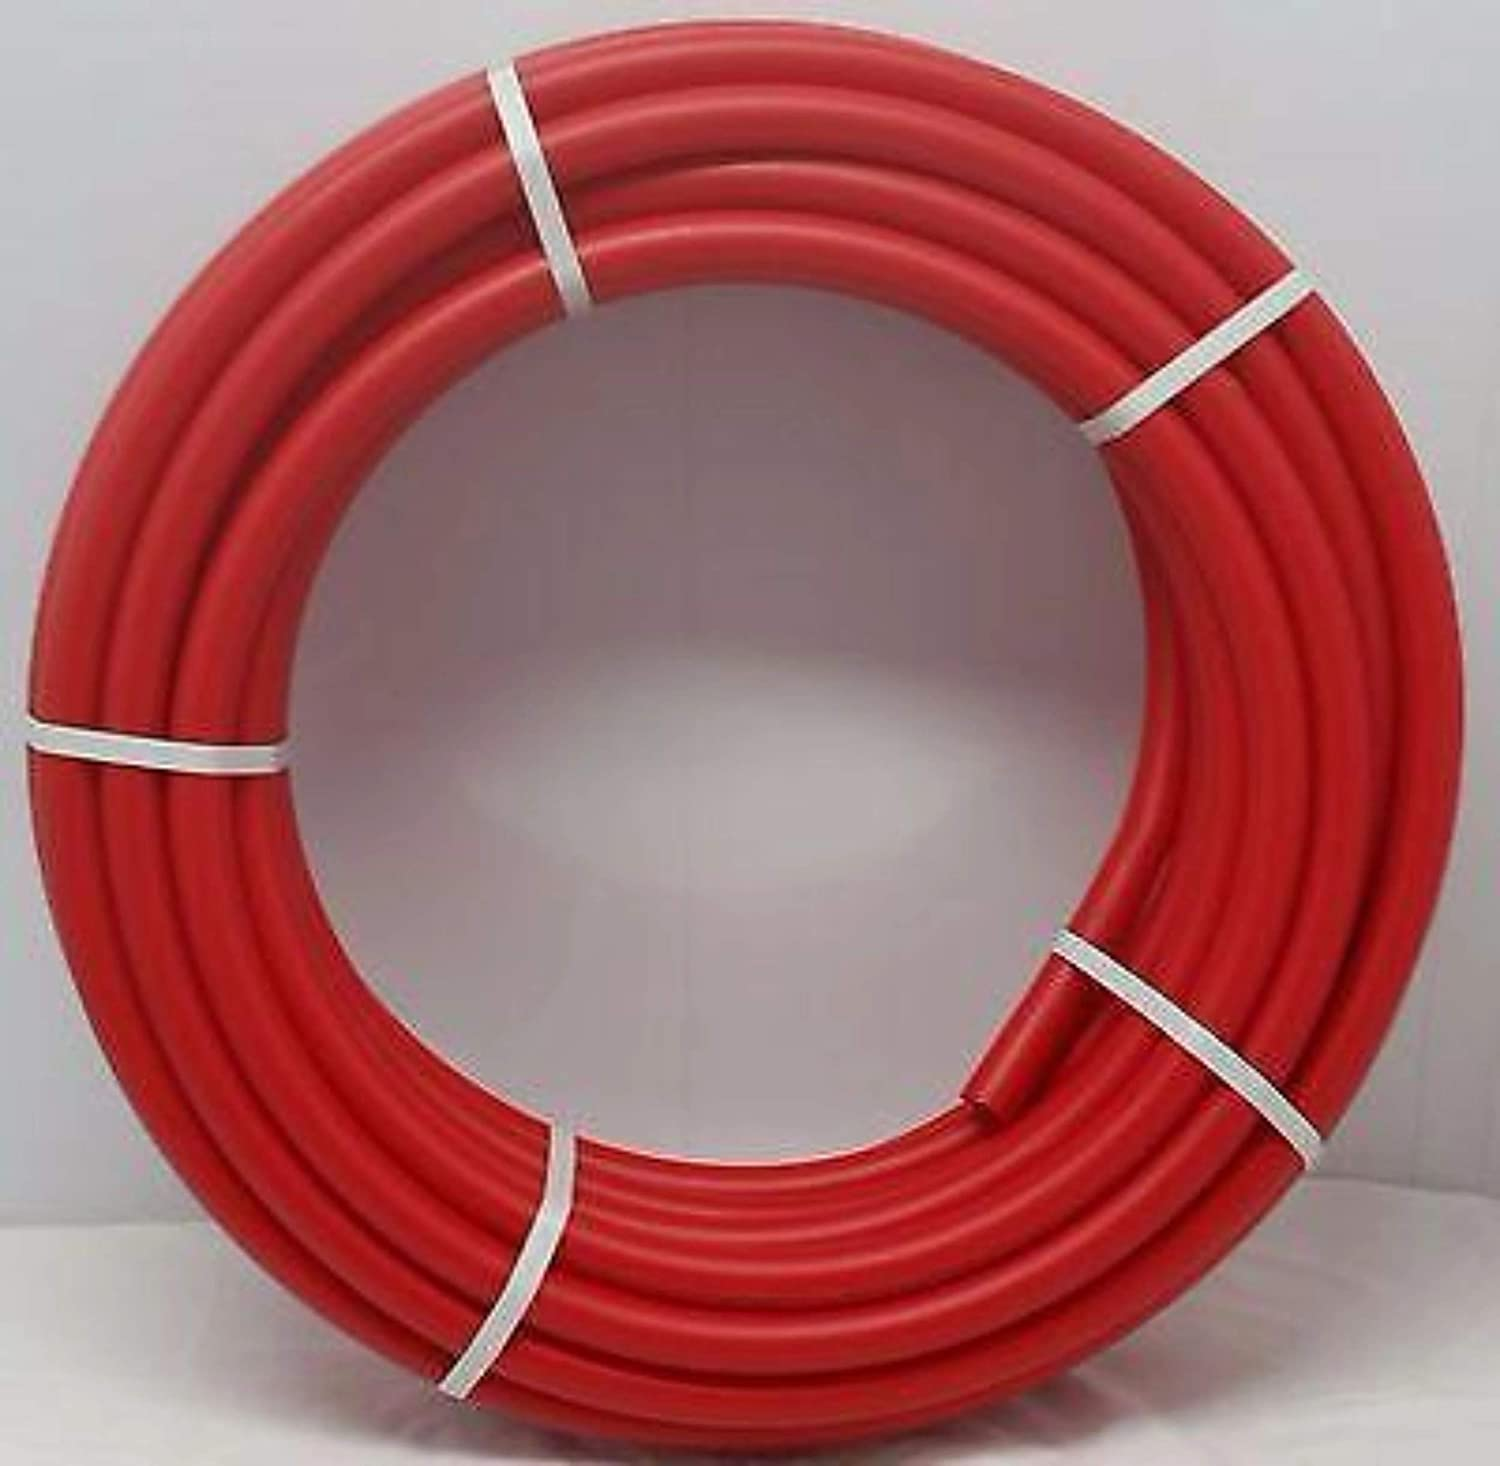 RED Certified Non-Barrier PEX Tubing Htg//Plbg//Potable Water Details about  /1/' 100/' coil